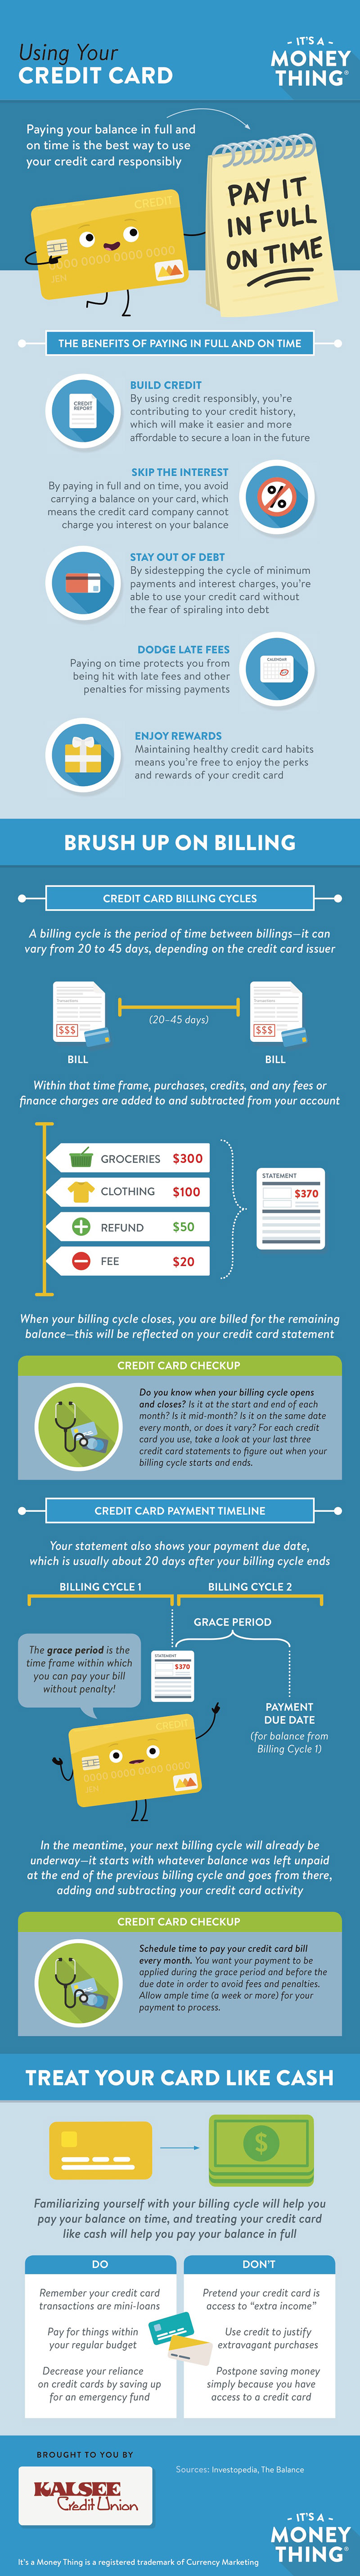 using your credit card infographic, click for transcription